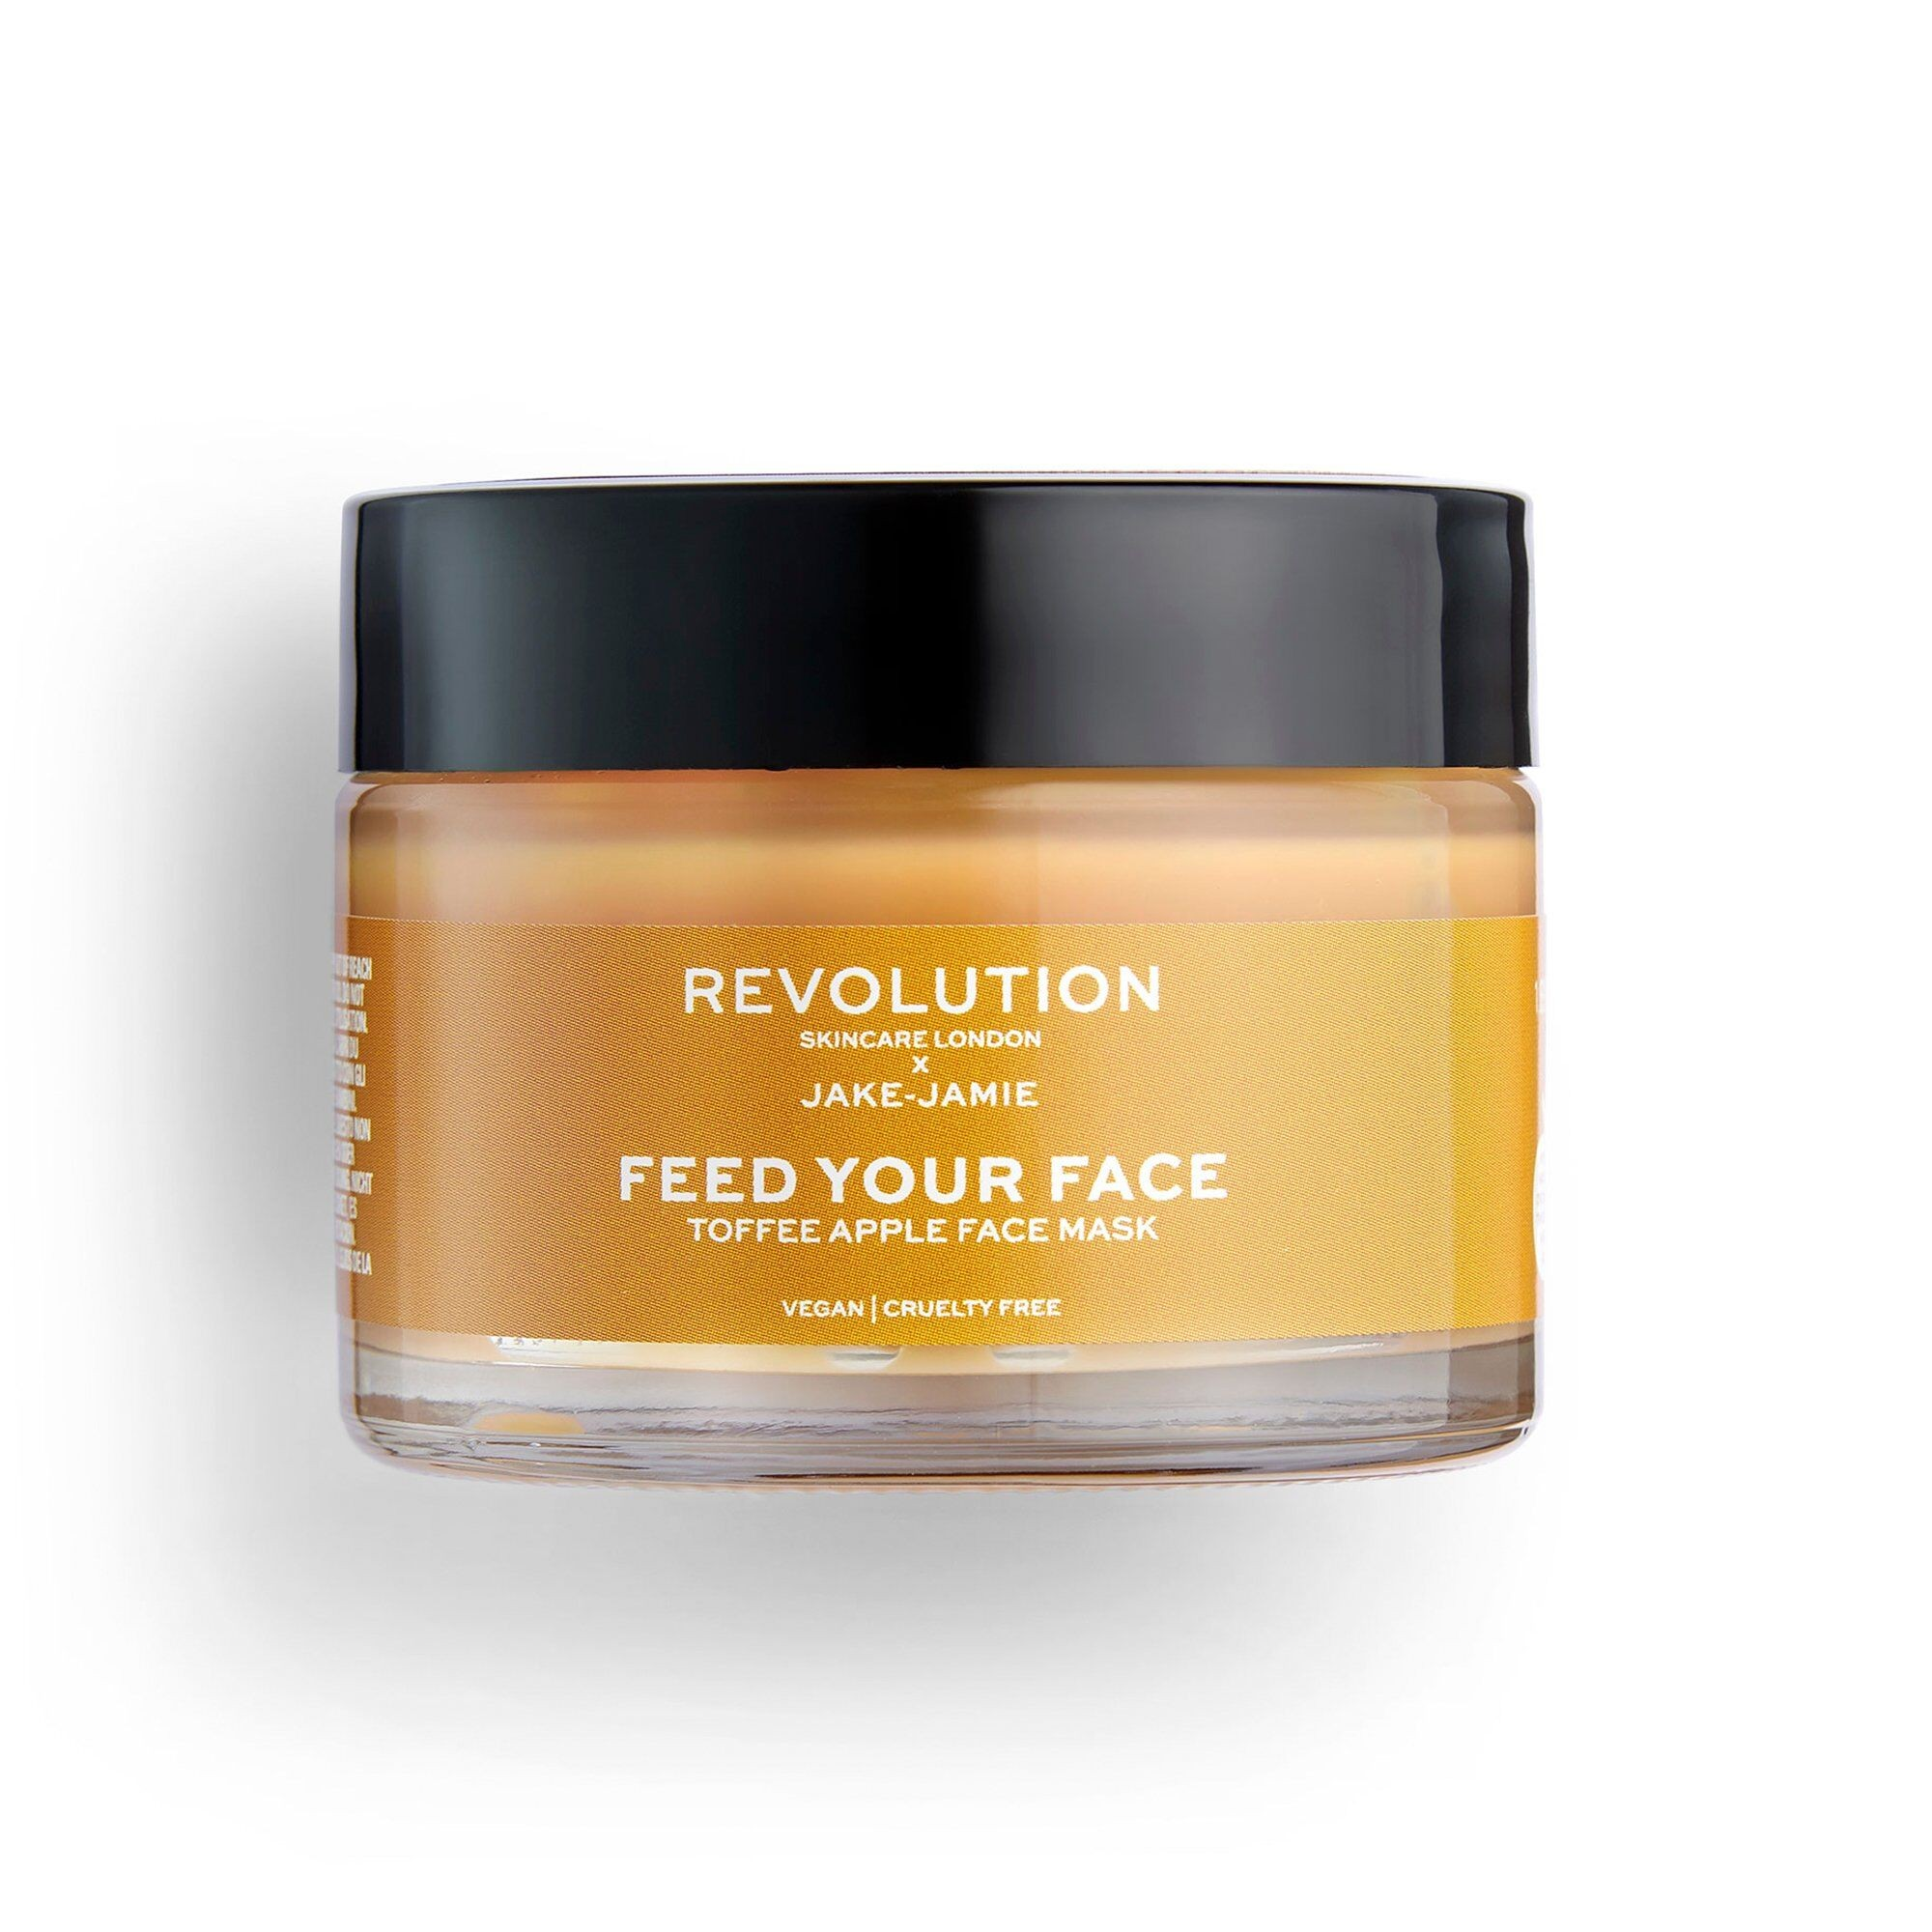 Masque Pomme Caramel - Revolution Skincare x Jake - Jamie Toffee Apple Face Mask